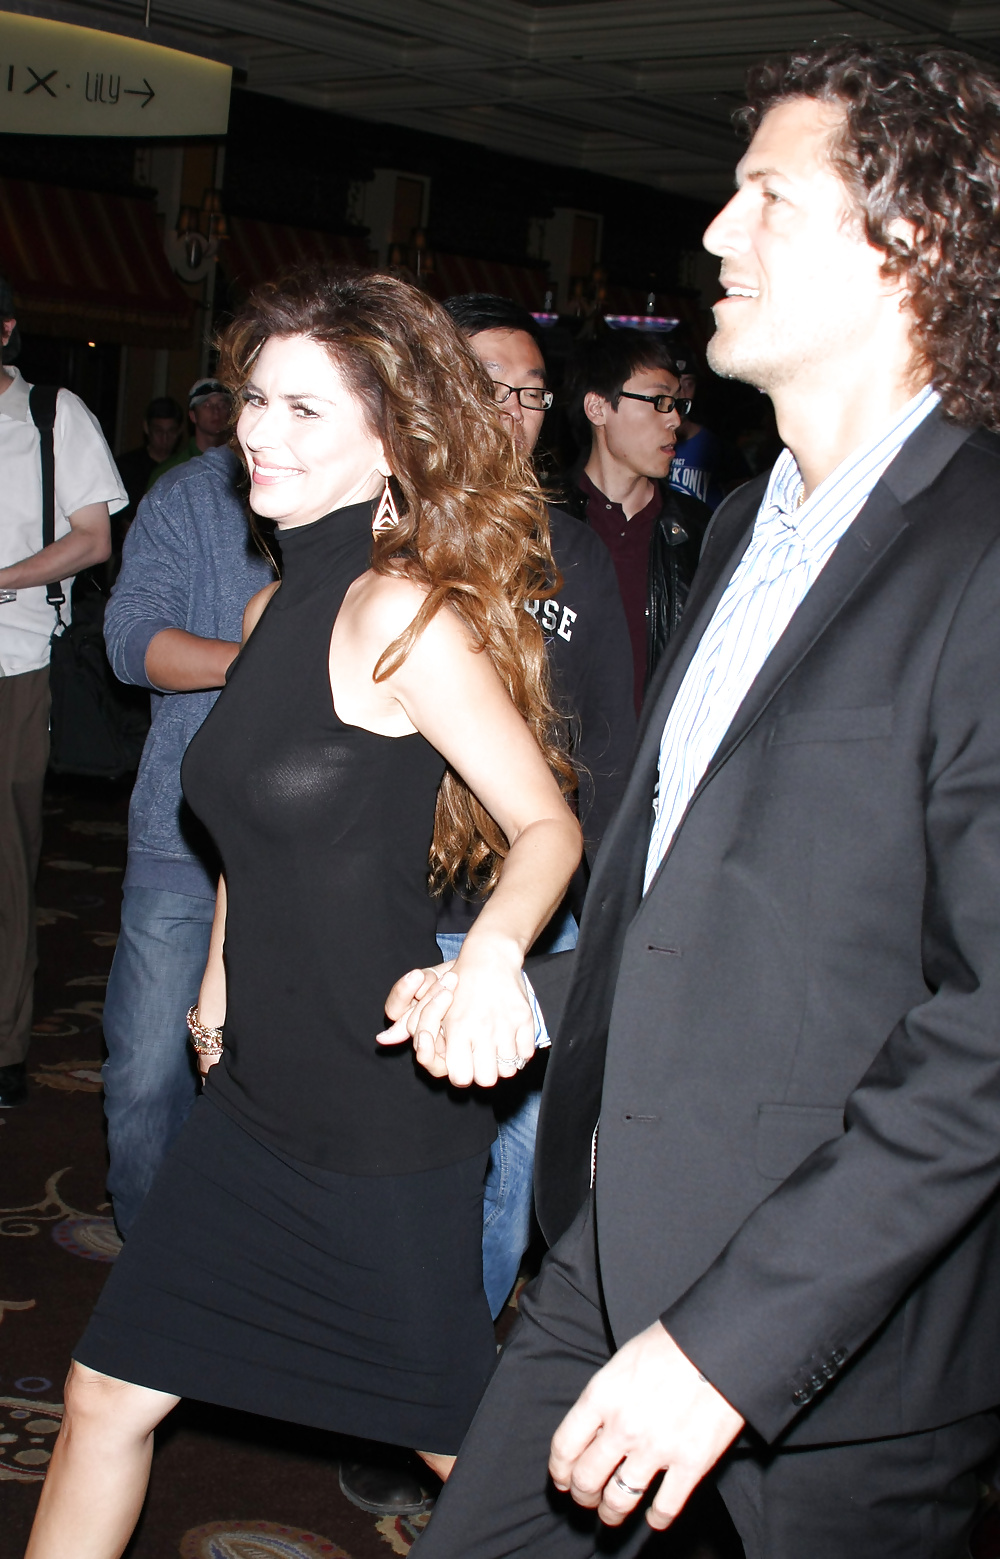 Nude pictures of shania twain